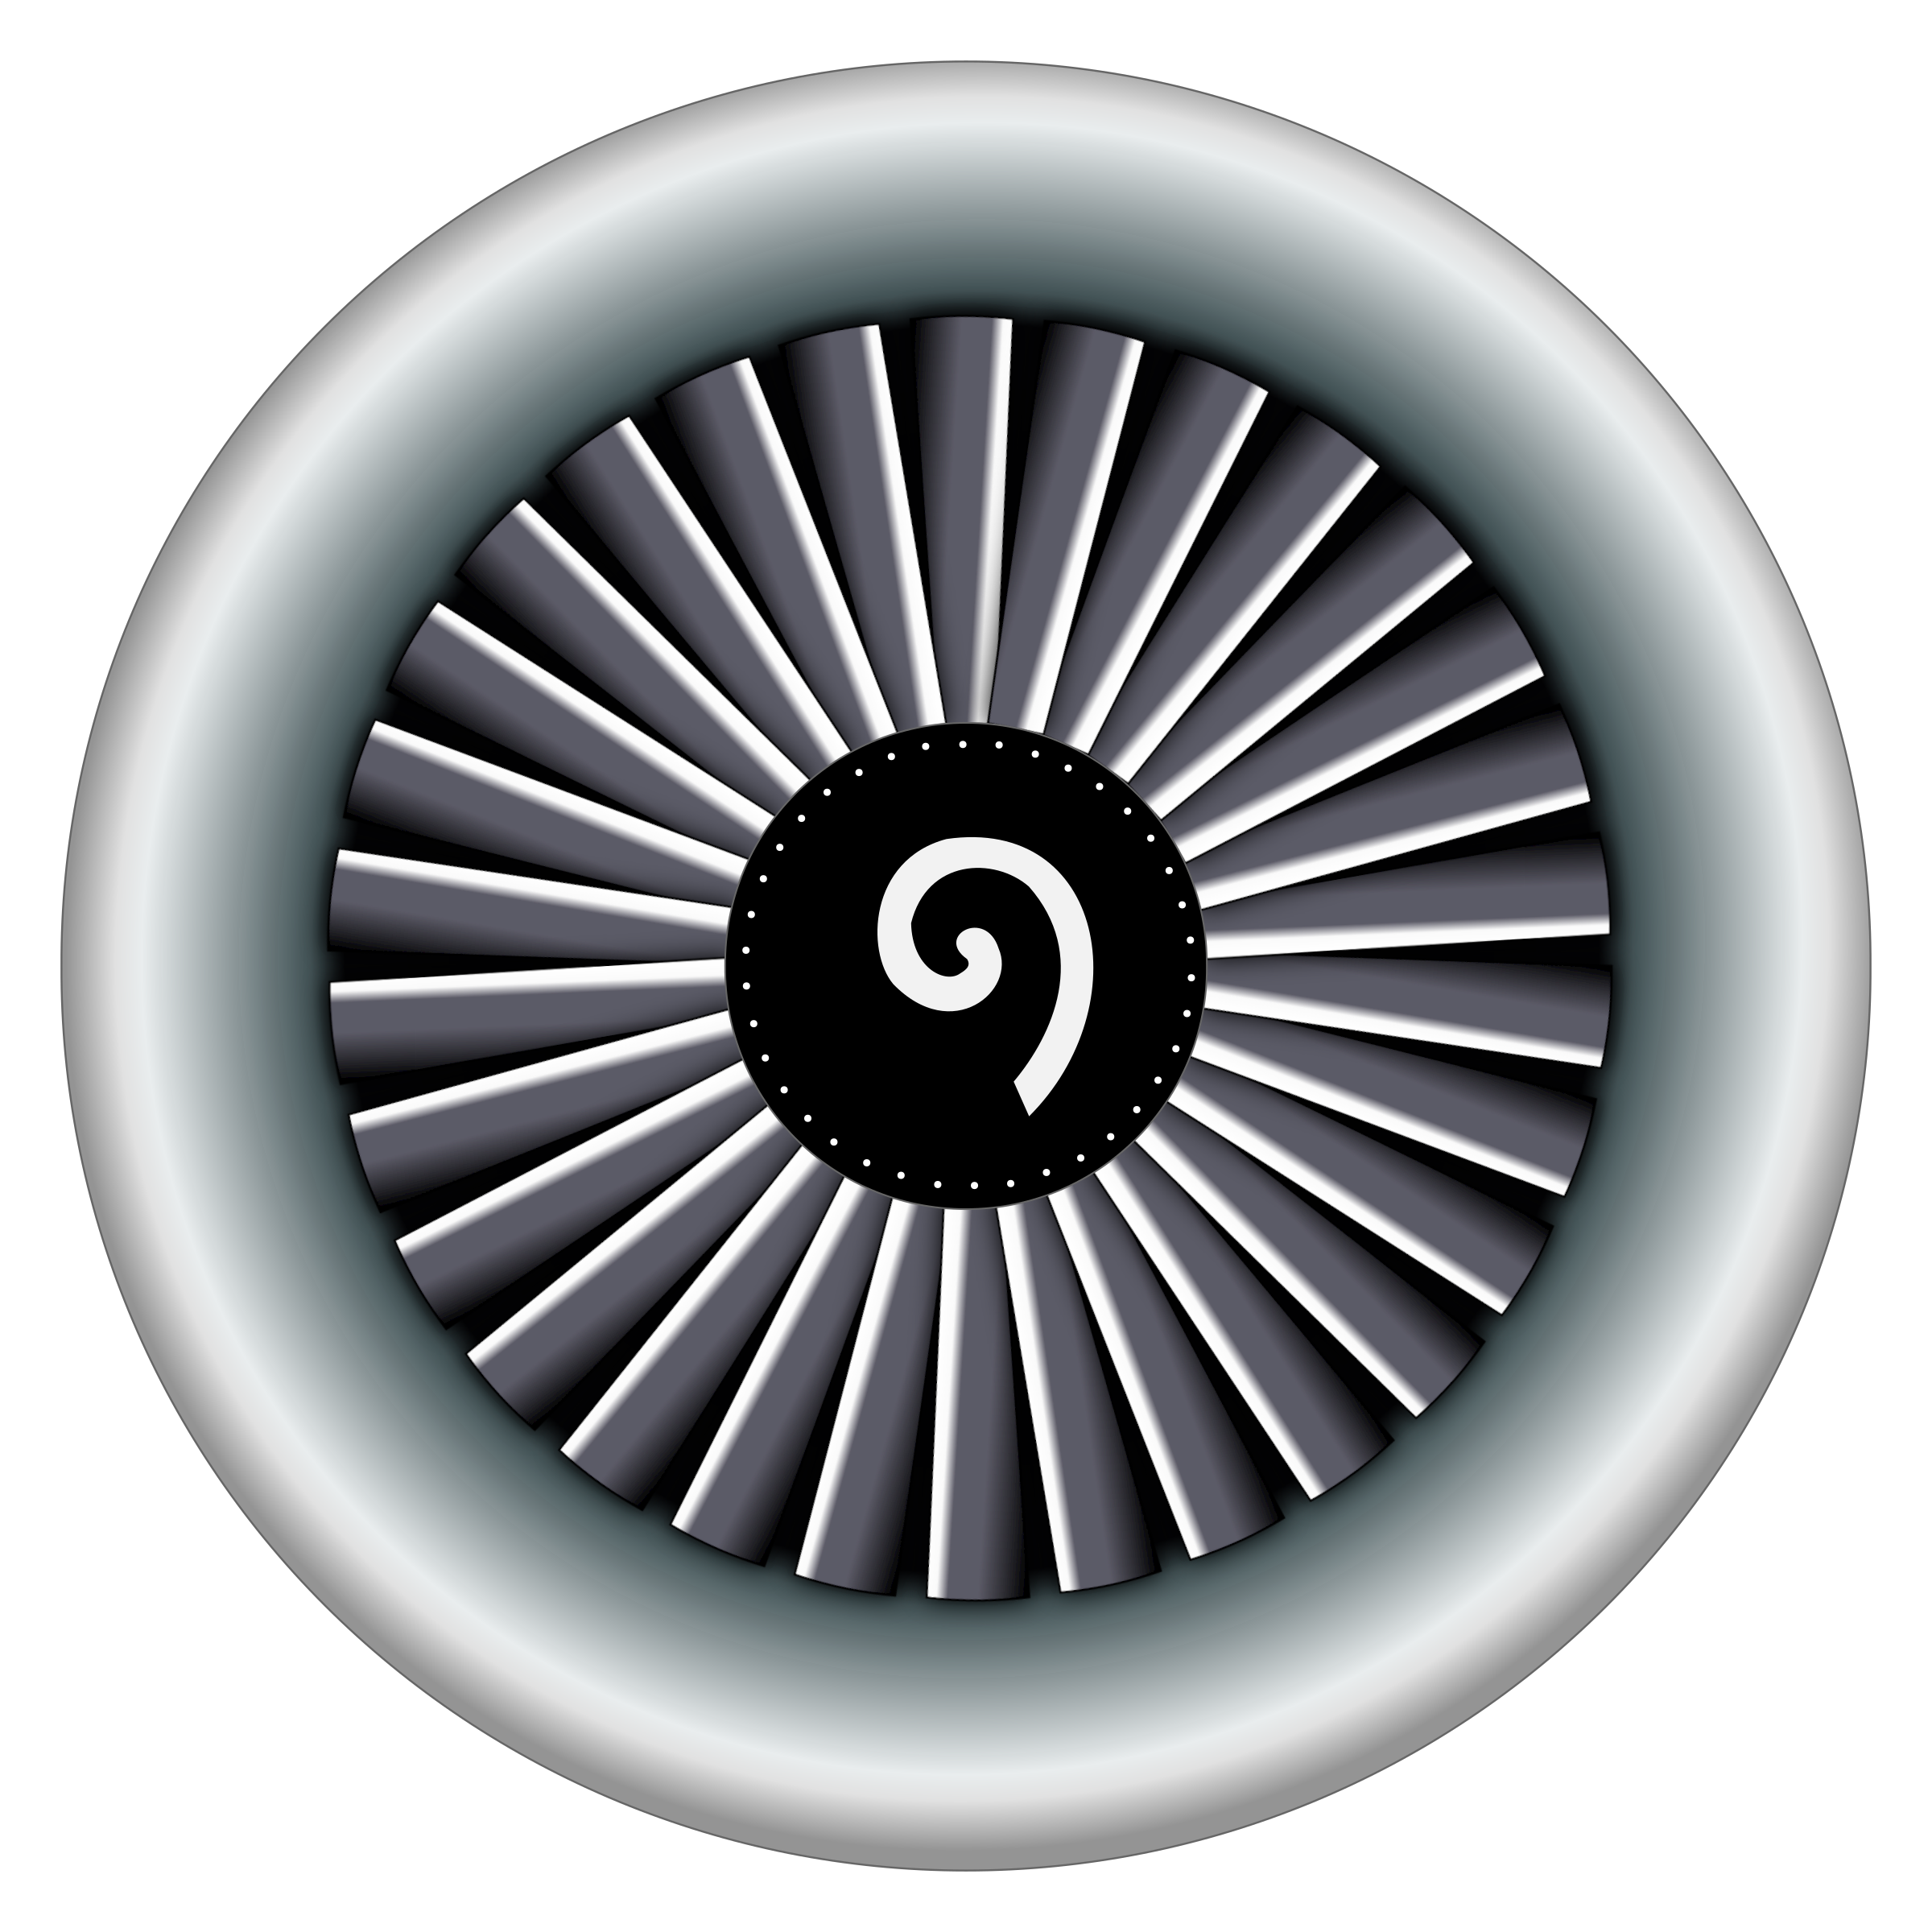 Engine clipart airplane. Jet big image png